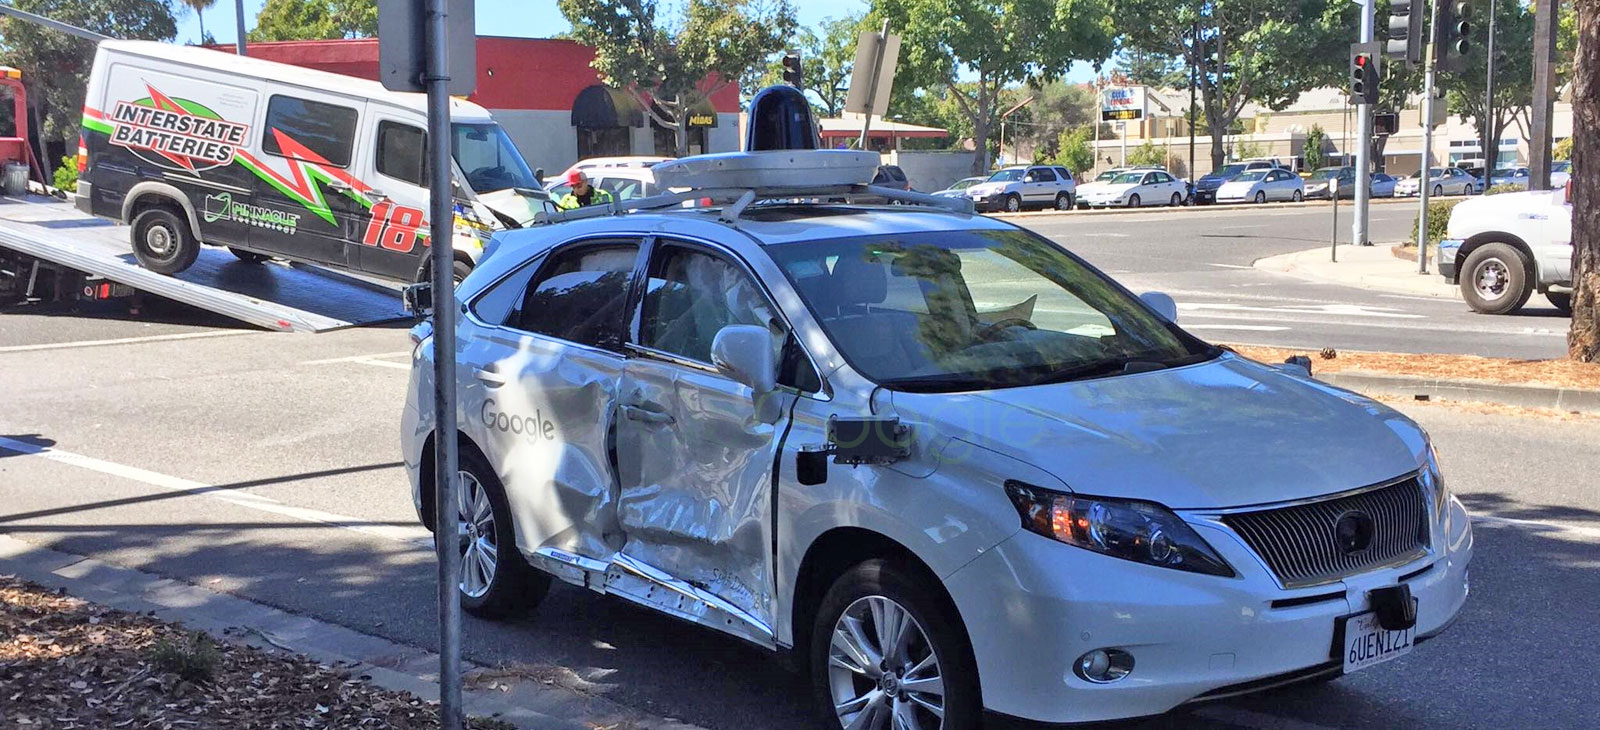 Google S Autonomous Car Is The Victim In A Serious Crash